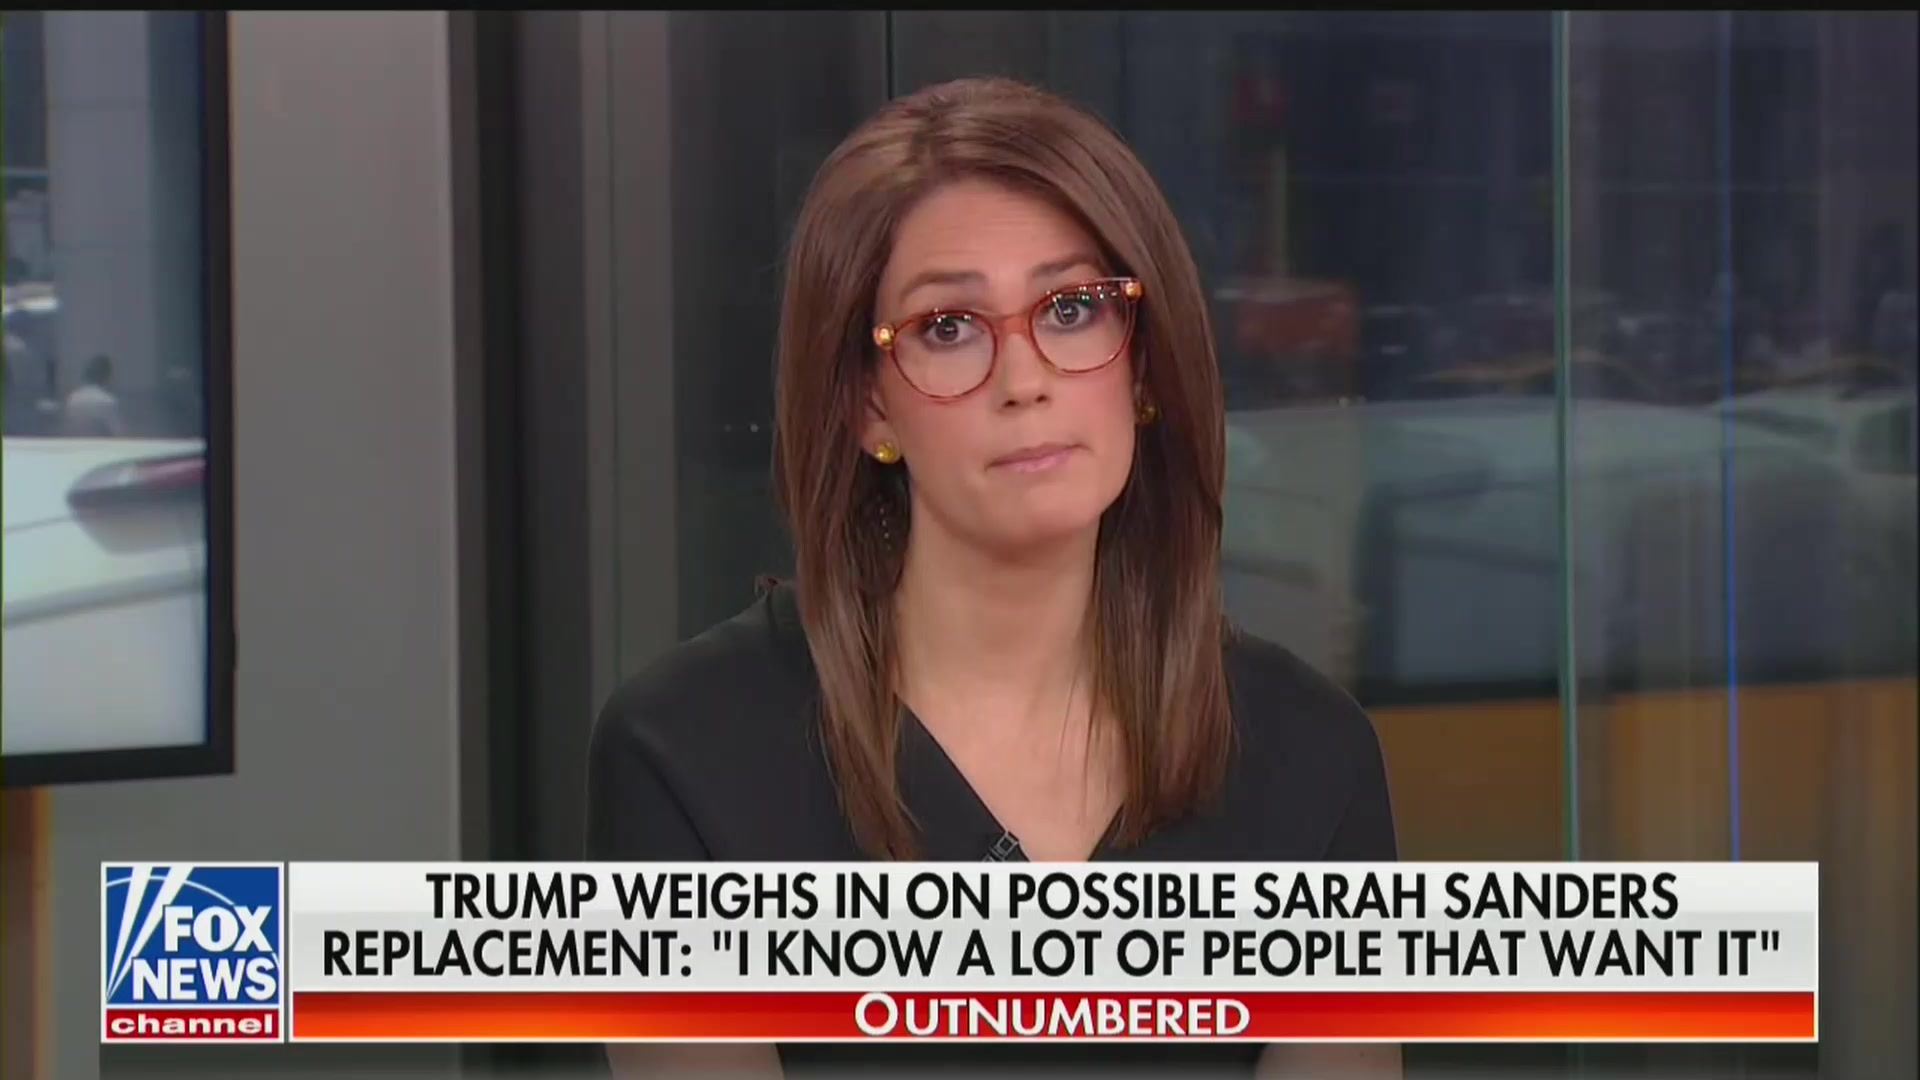 Fox Anchor Reacts to Co-Host Blasting Sarah Sanders as a Liar: 'Oh My Gosh, Get to the Commercial'